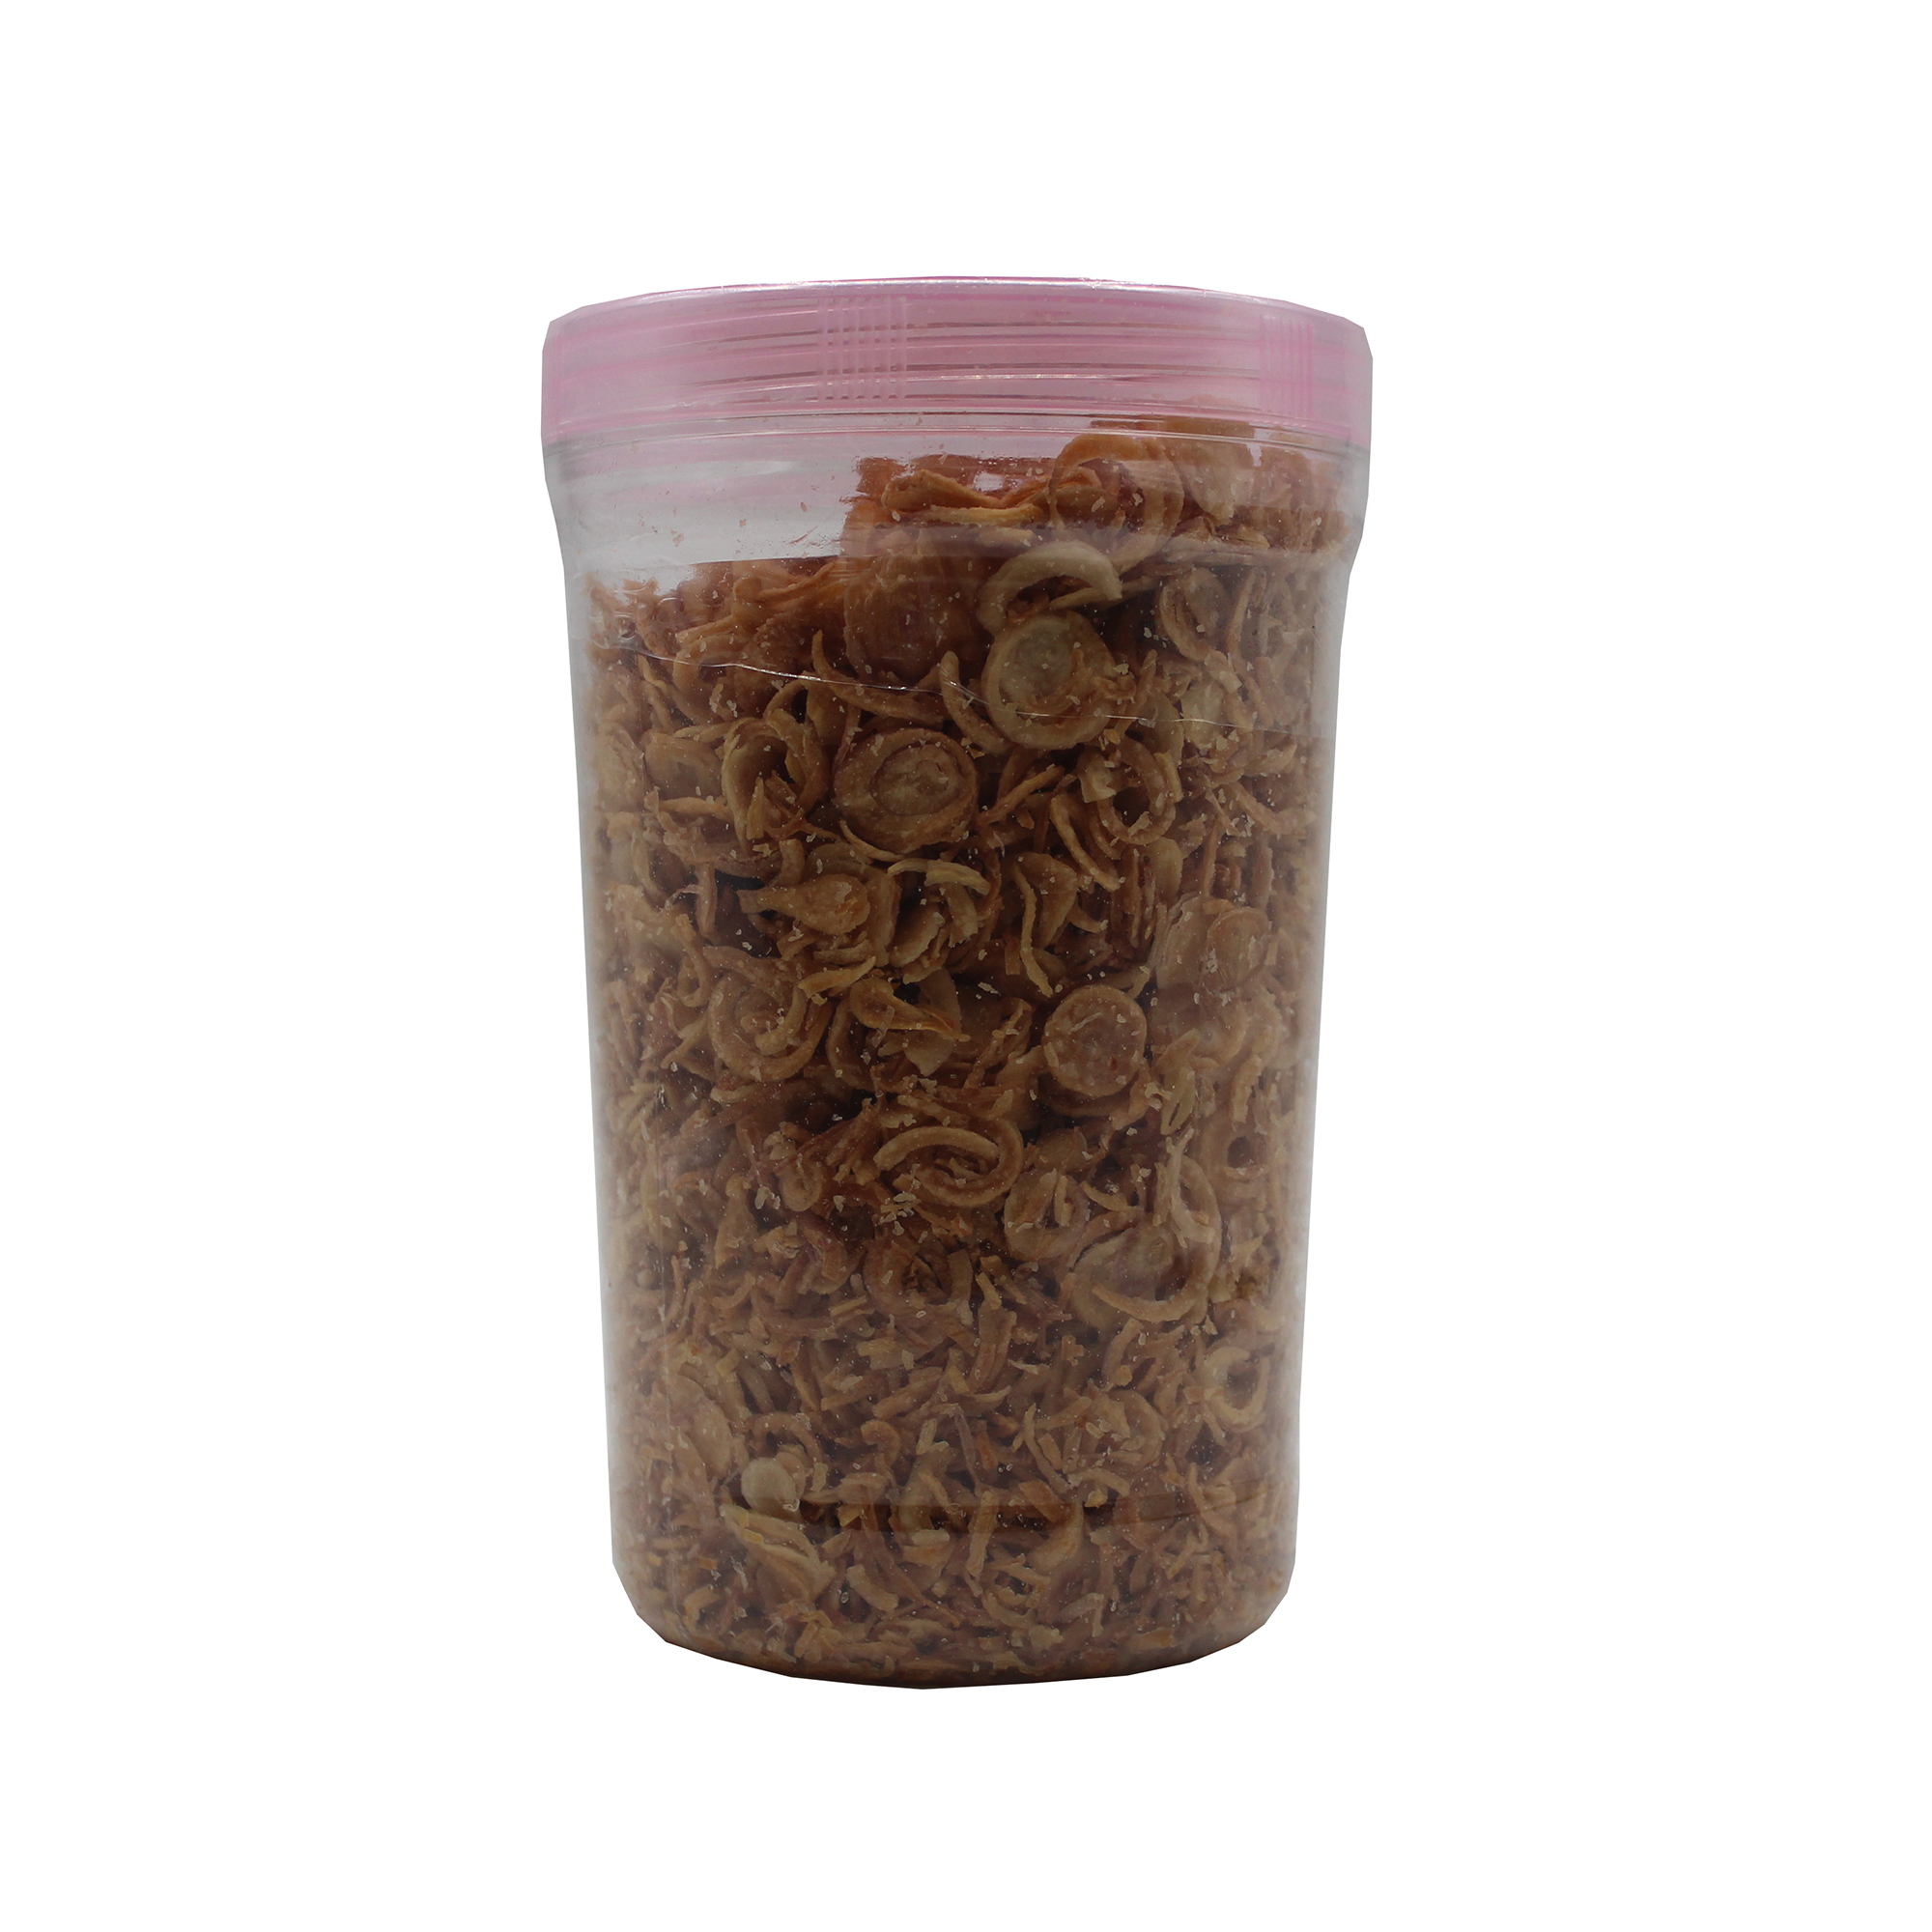 large twin rabbit fried red onion hanh phi 12 oz MWvrOR6nP3